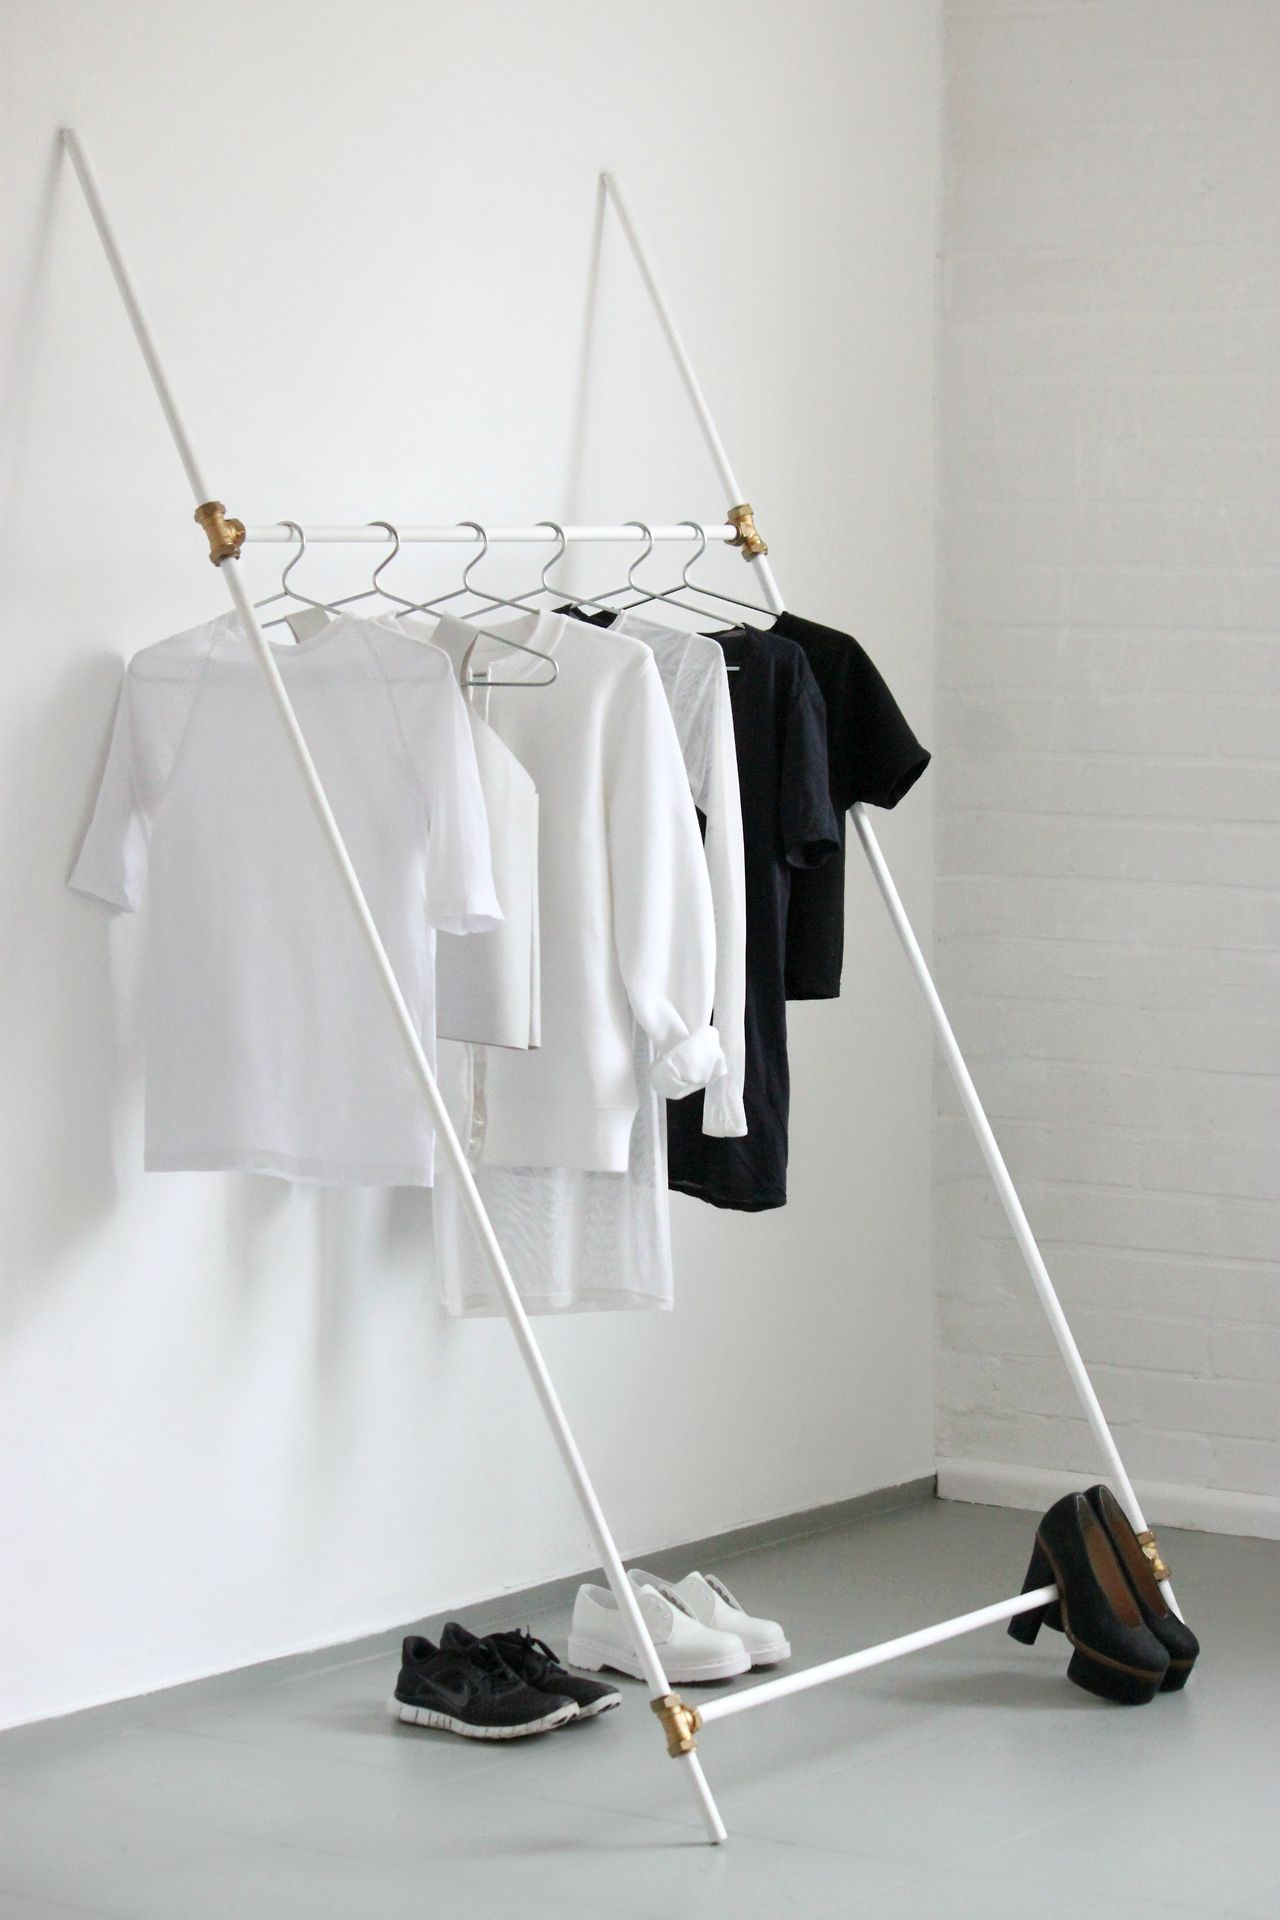 Kleideraufbewahrung Ideen Clothing Rack Made From Plumbing Tubes Home